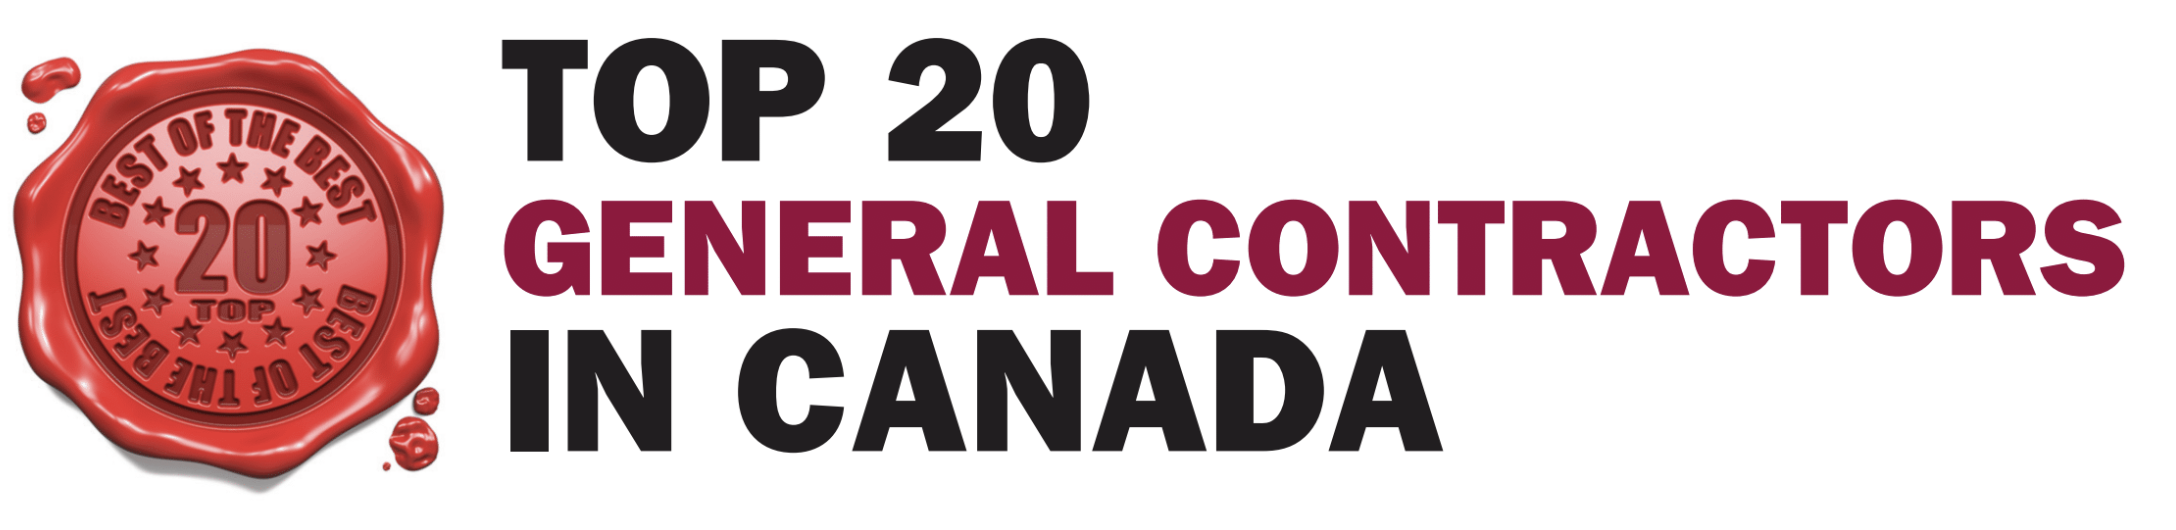 Canada's Top 20 General Contractors: A special report | Canadian